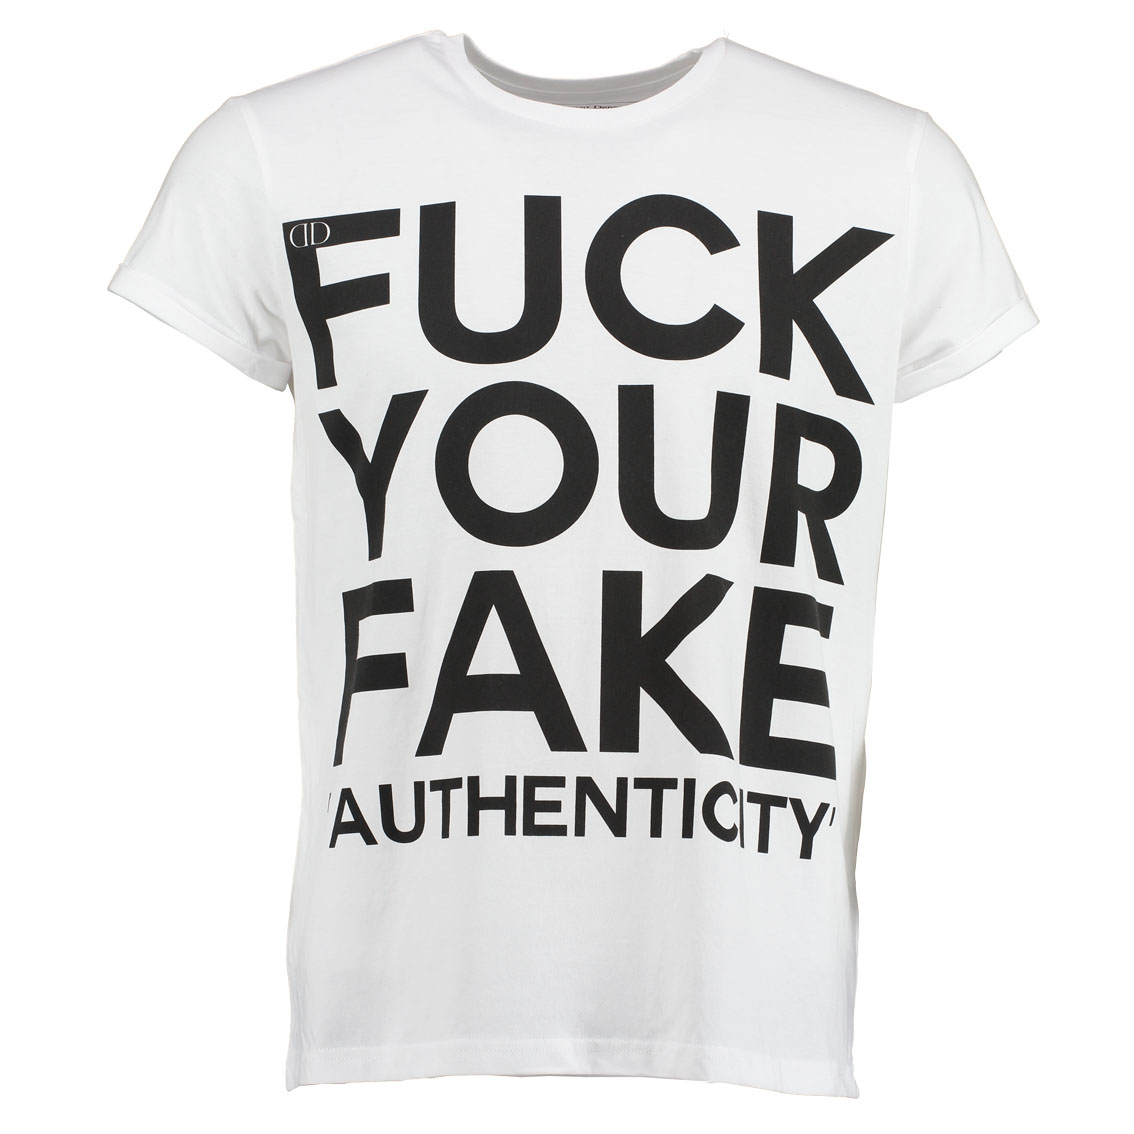 Deportment Department Fuck Your Fake Authenticity T shirt mens white worn